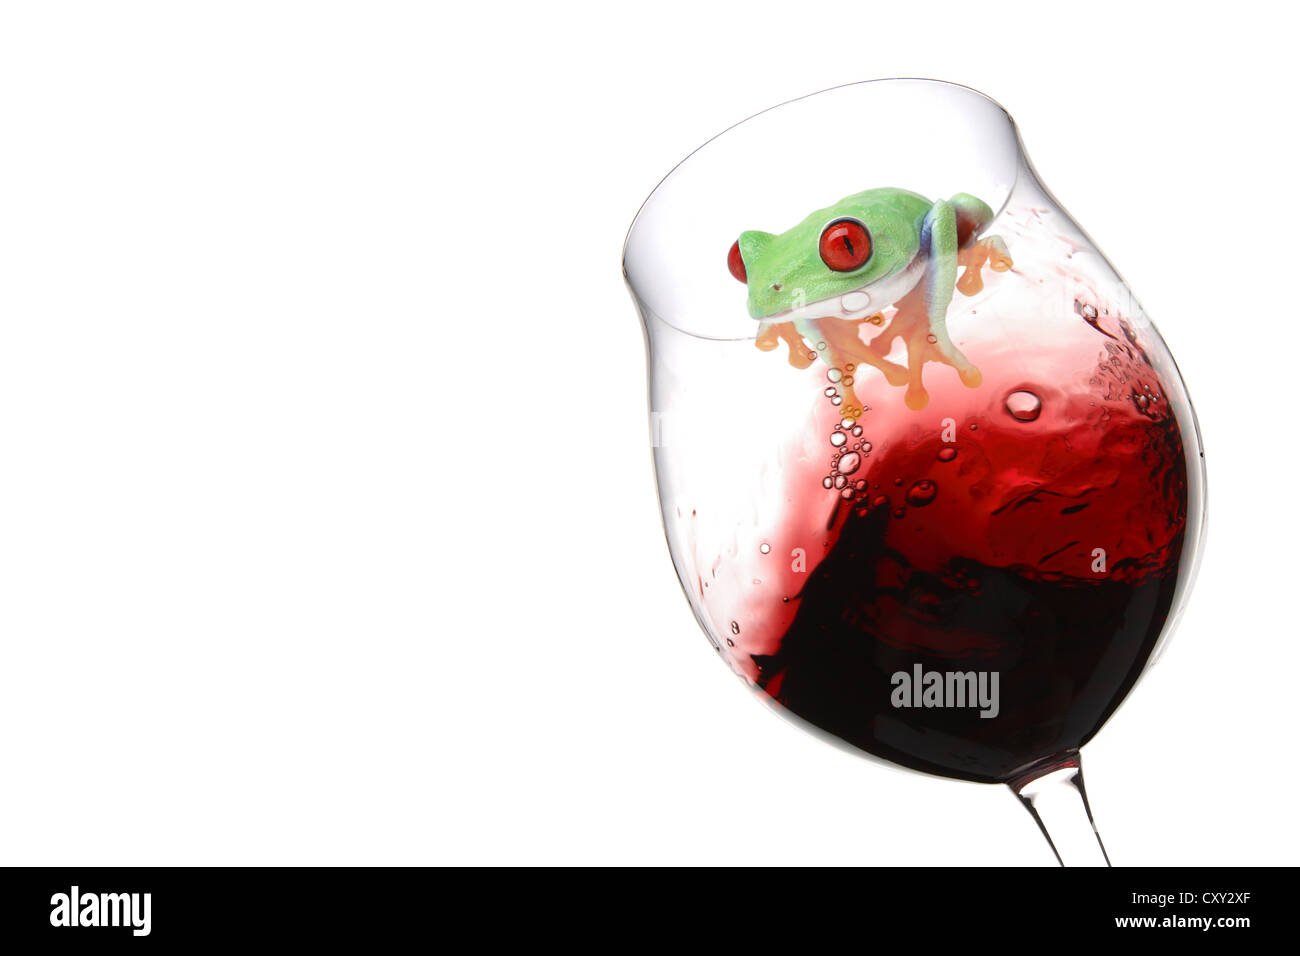 Red-eyed Tree Frog (Agalychnis callidryas) sitting on a wine glass with red wine Stock Photo